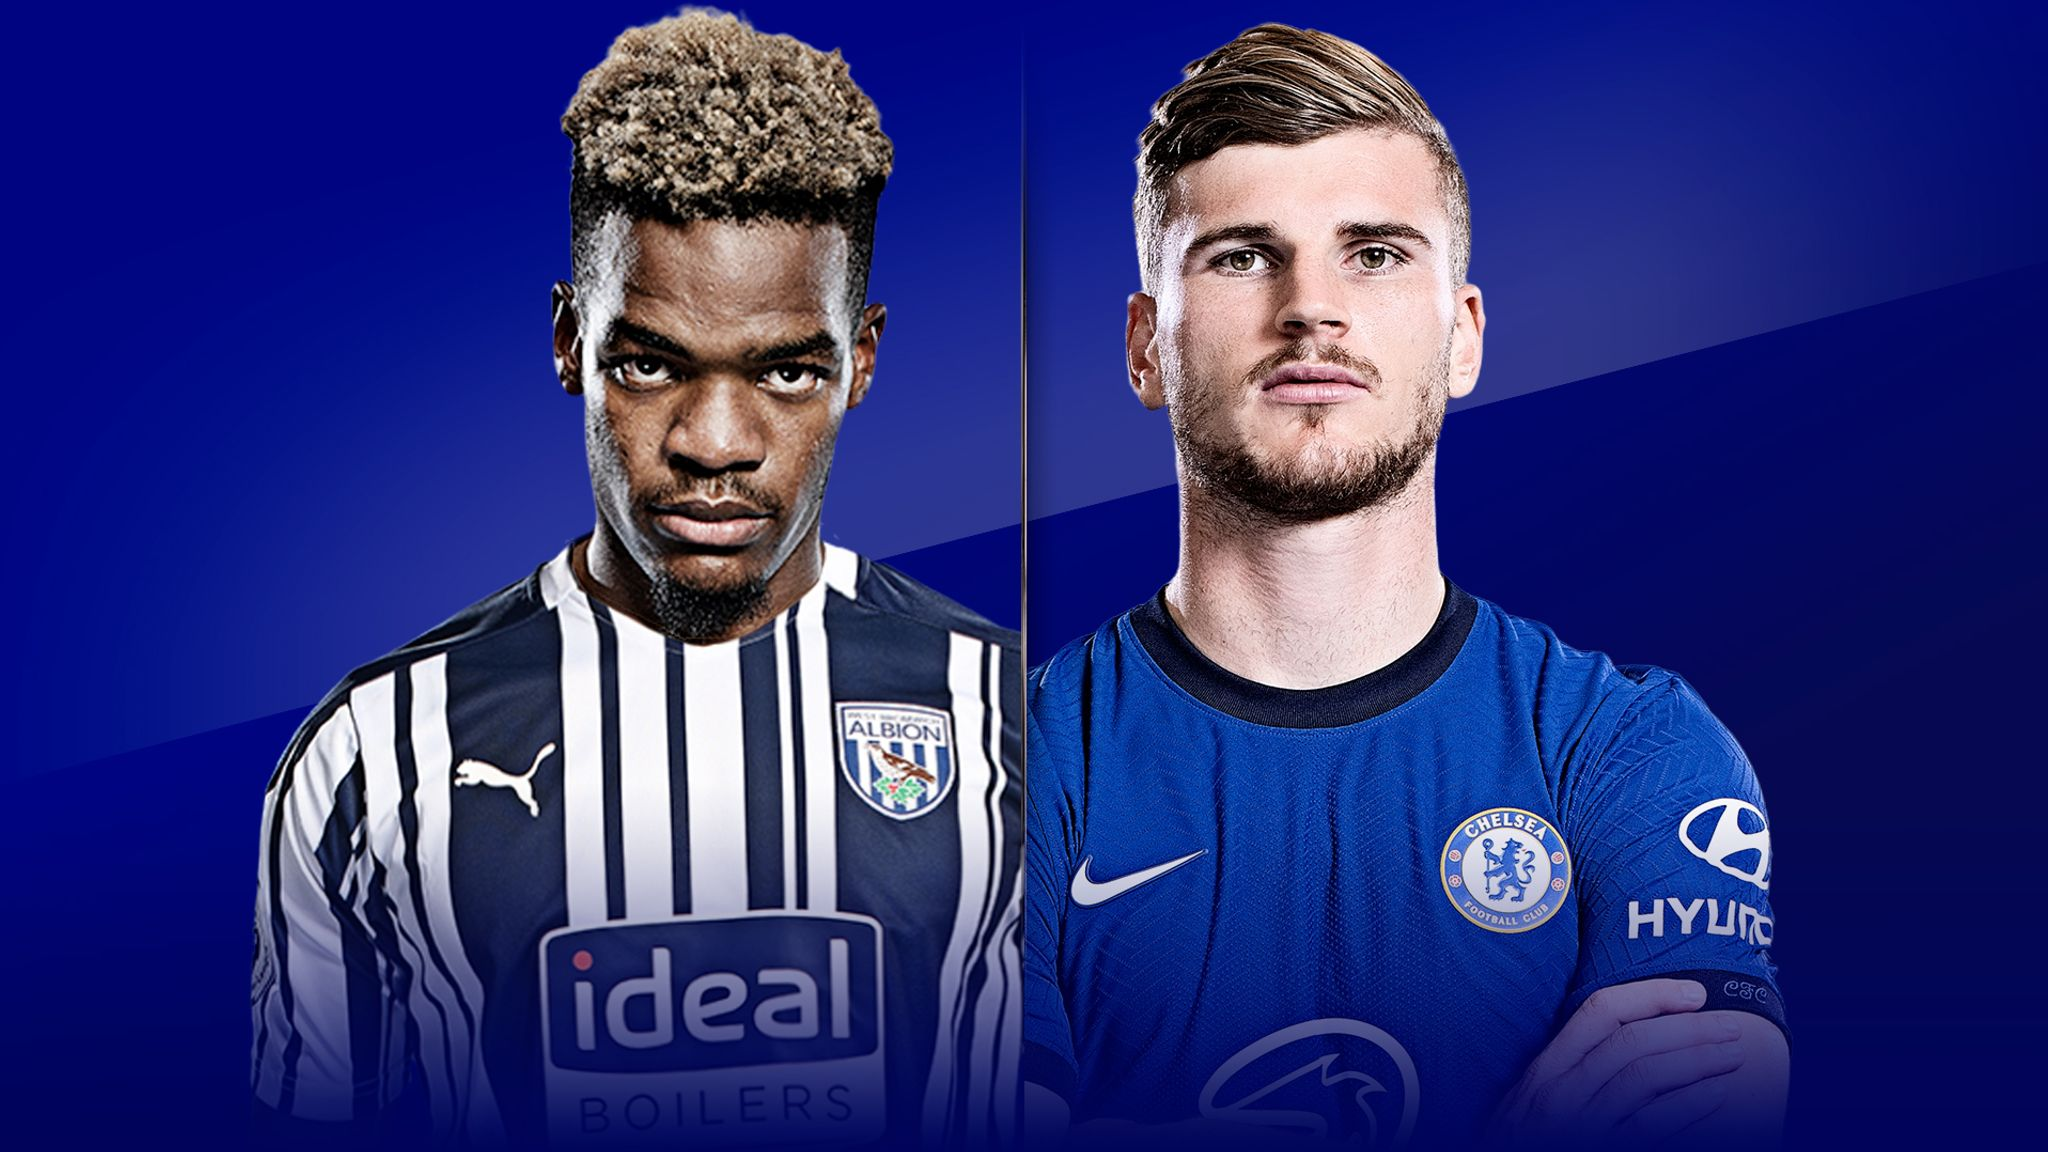 Live Match Preview W Brom Vs Chelsea 26 09 2020